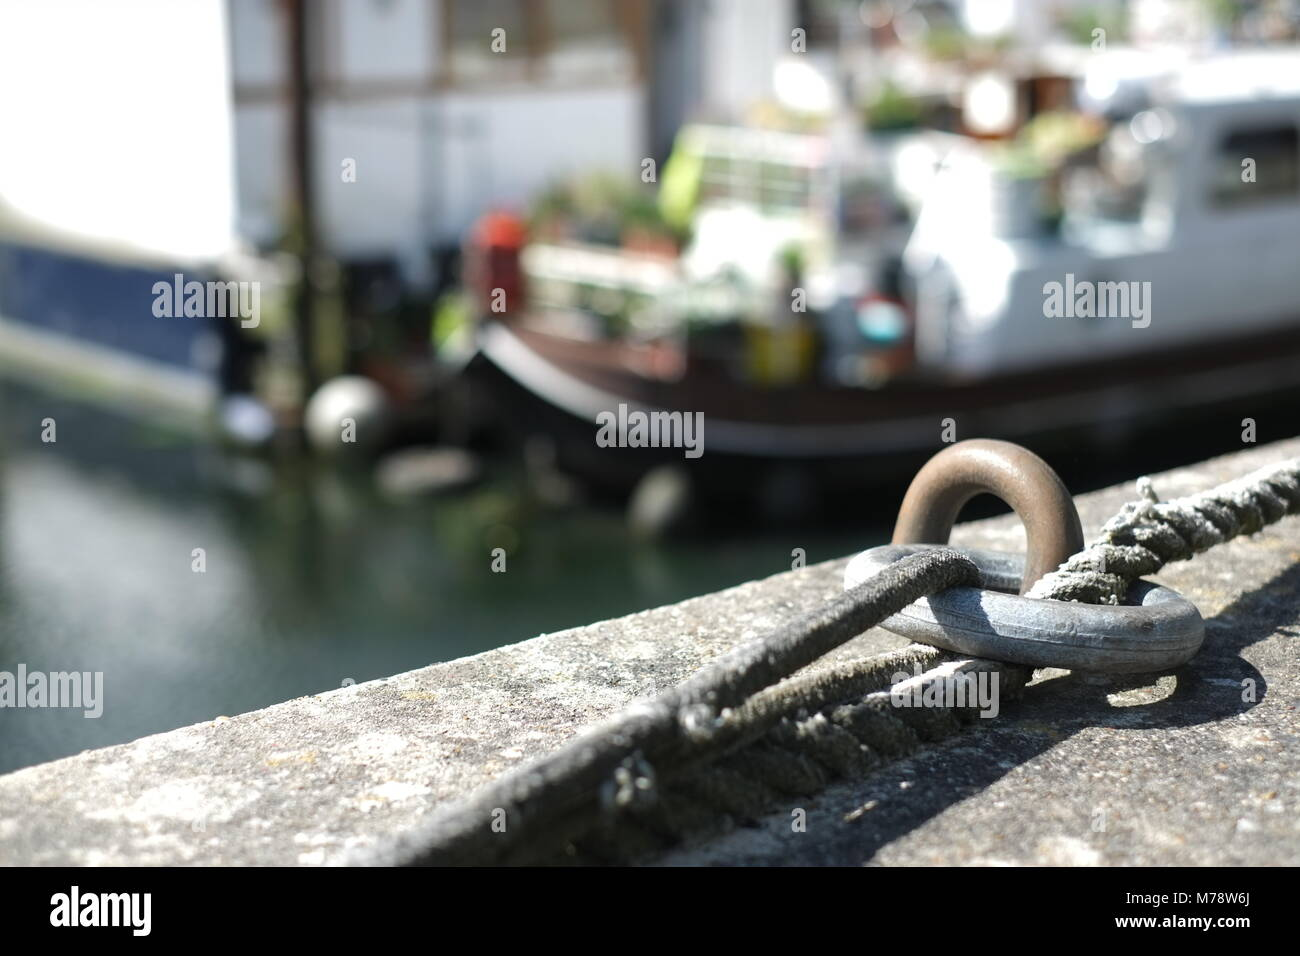 Close-up of boat mooring cleat on wall of Grand Union canal - Stock Image